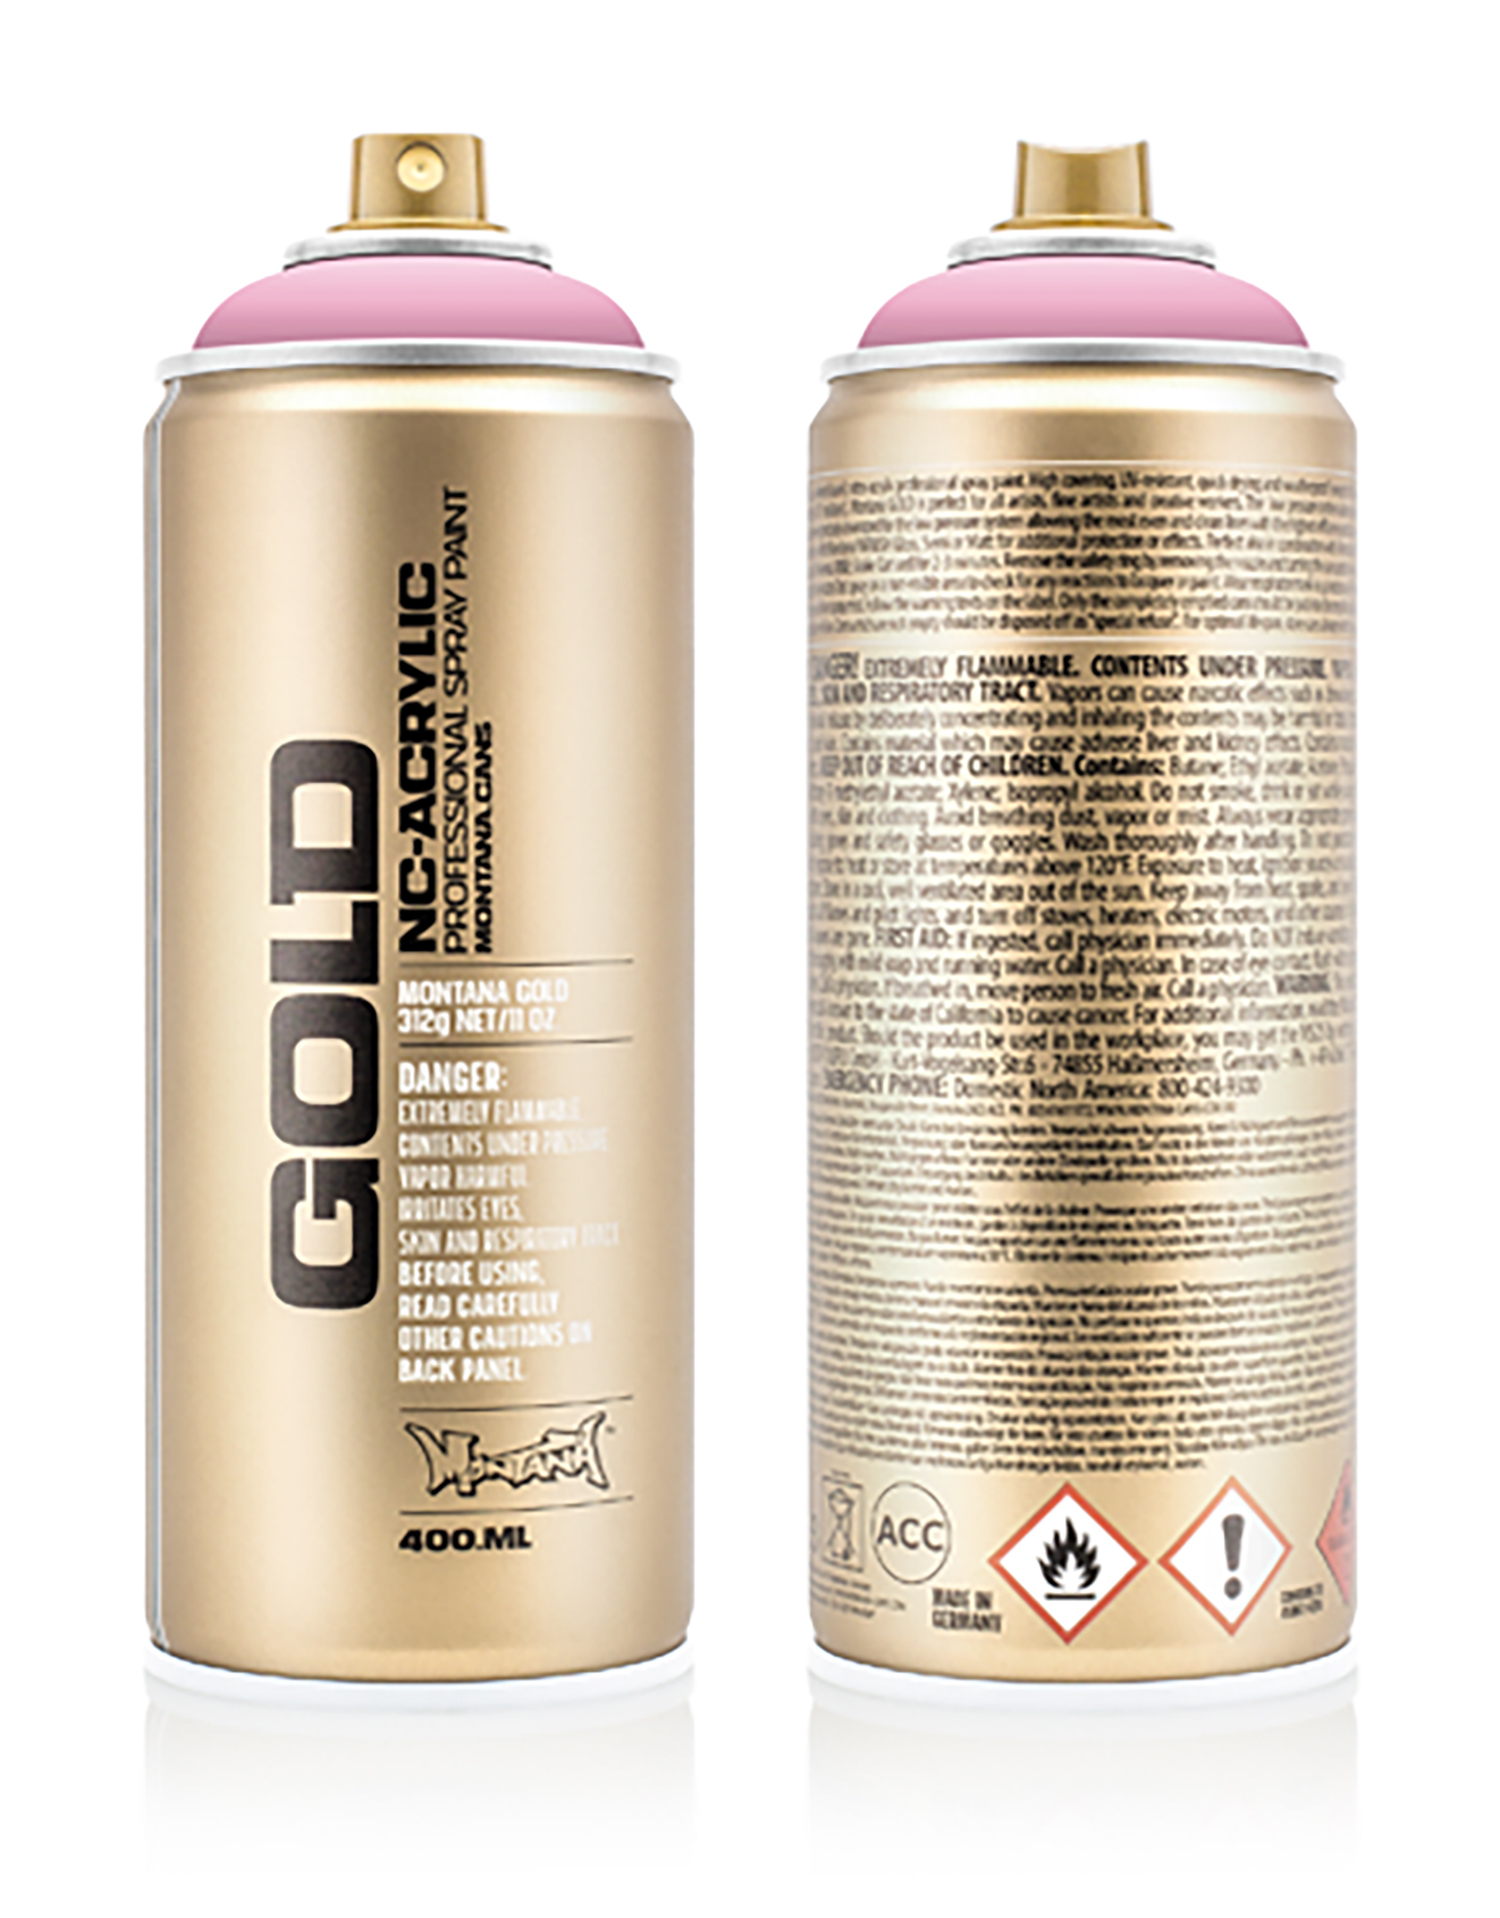 MONTANA-GOLD-SPRAY-400ML-G-3110